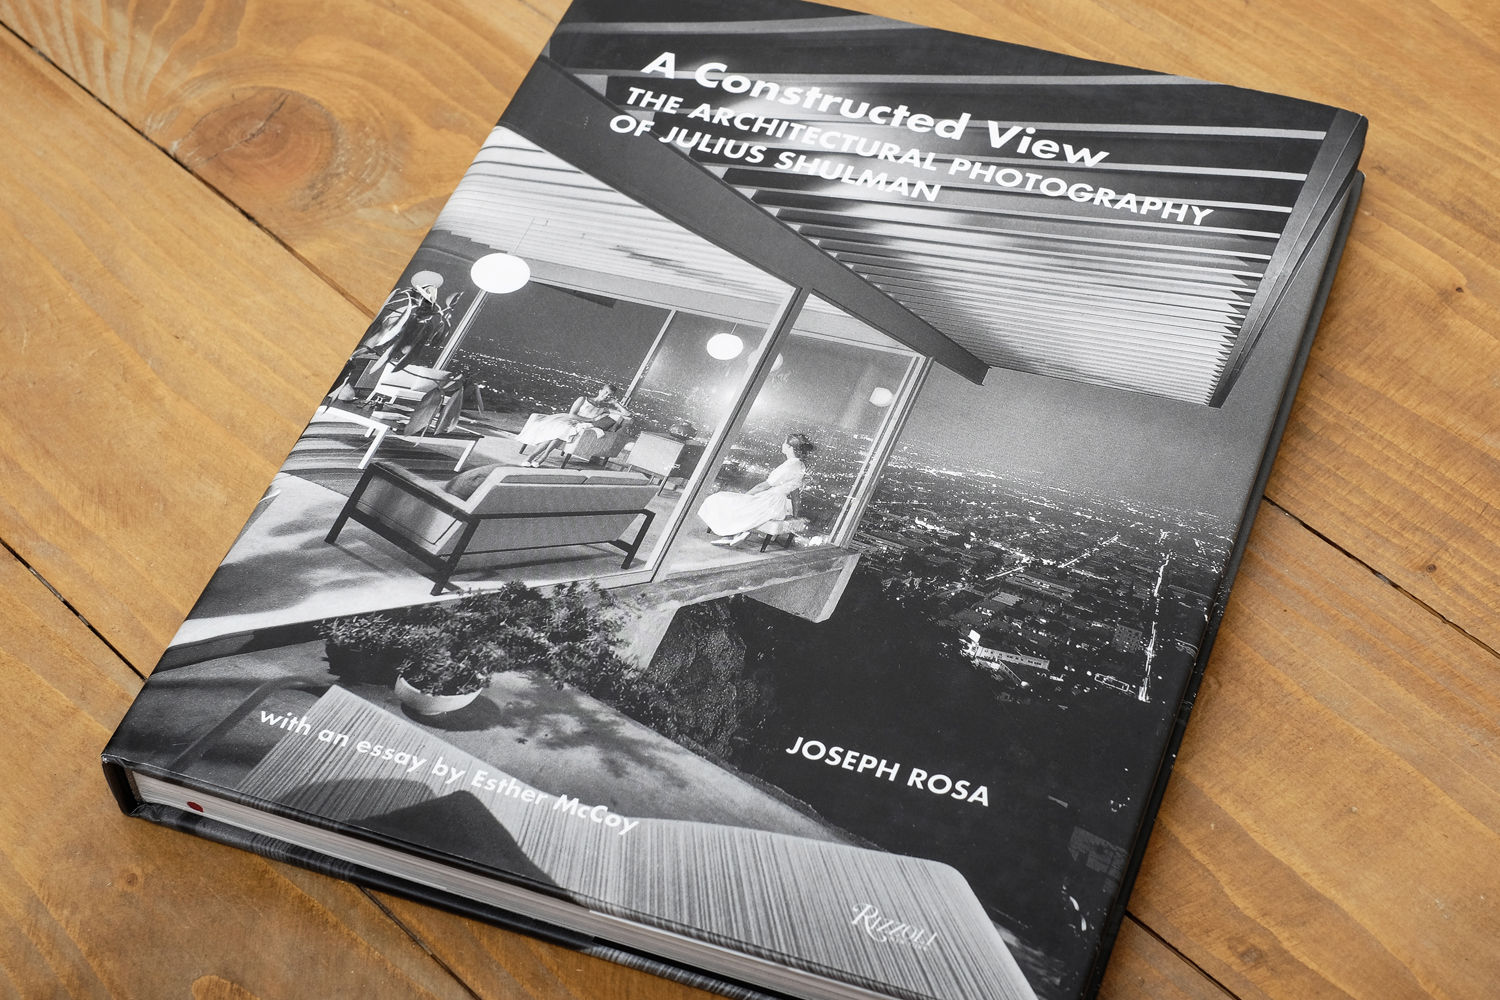 Julius_Shulman_book.jpg